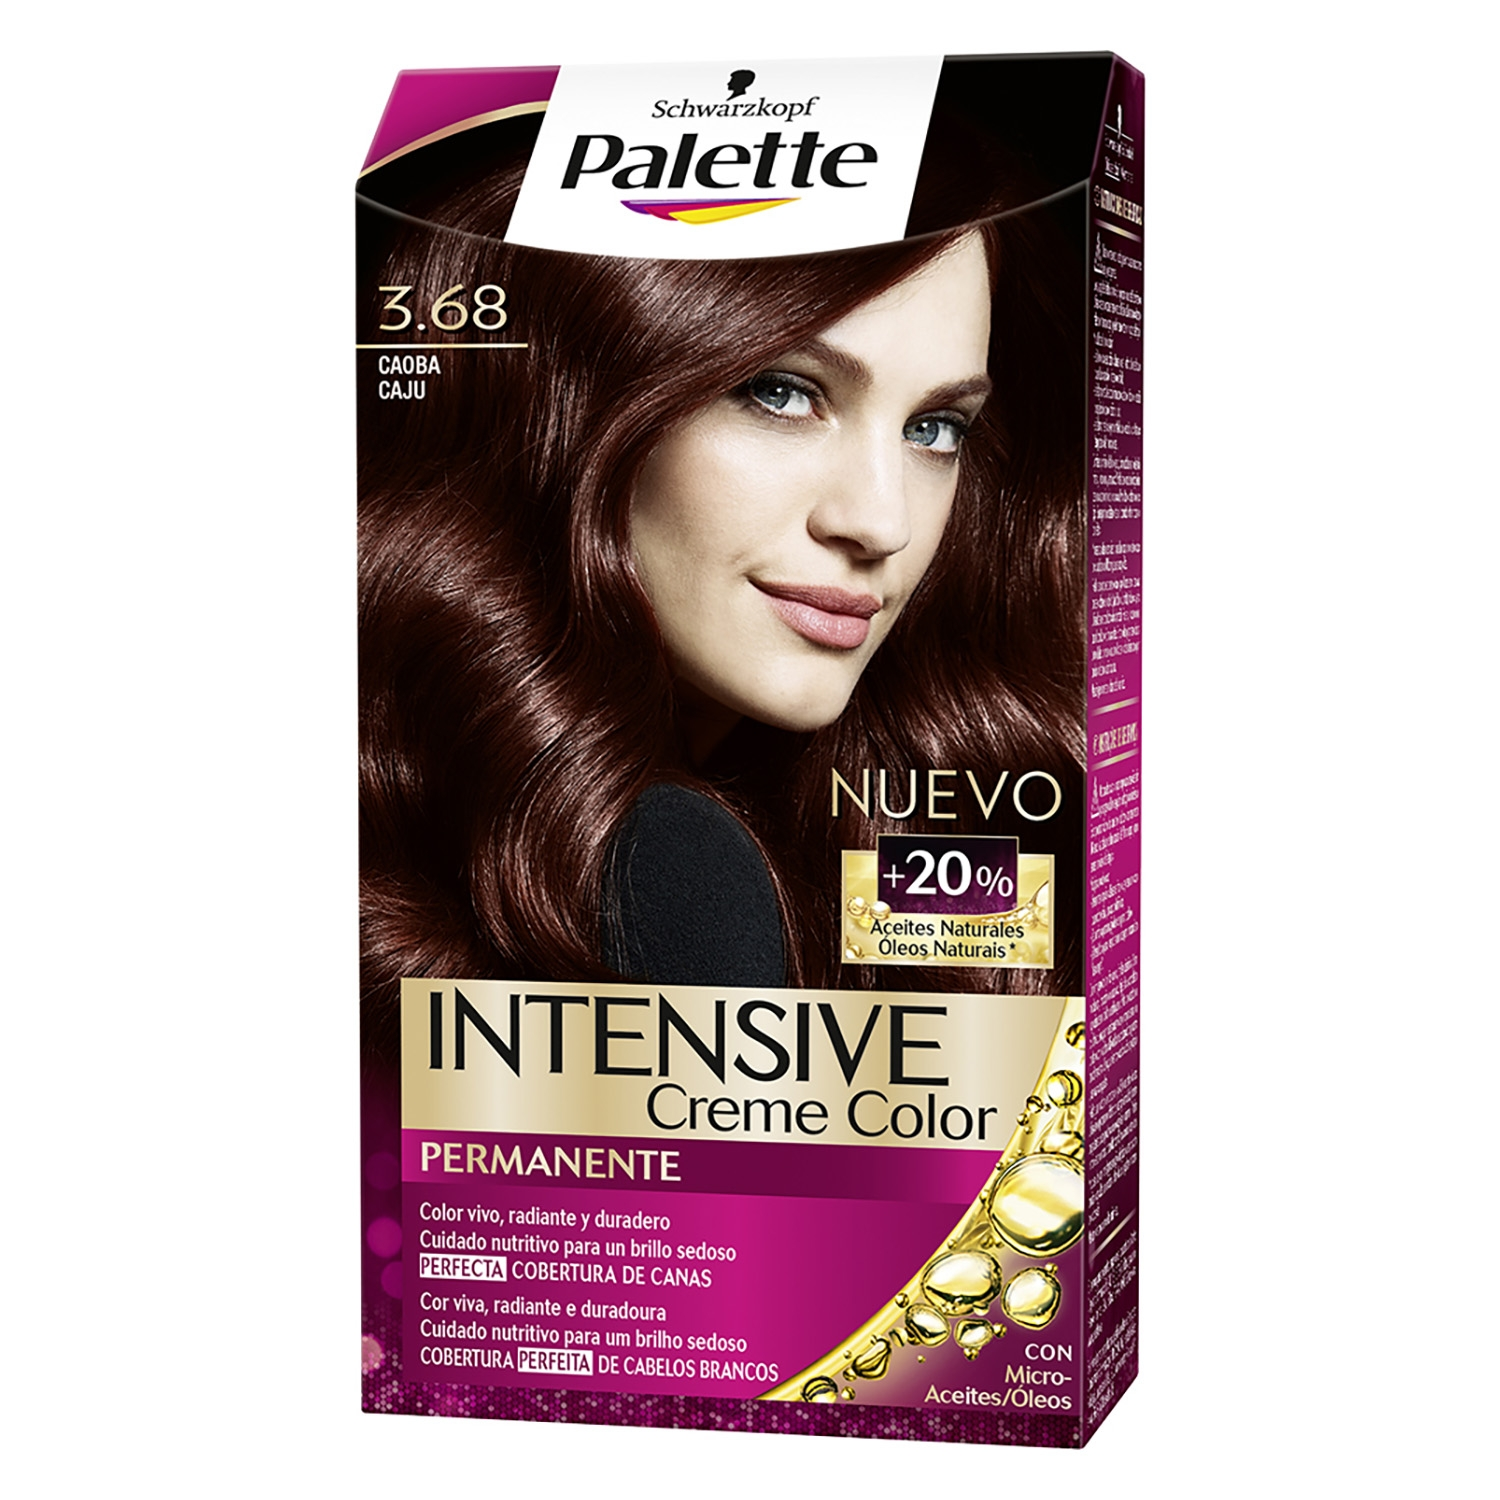 Tinte intense color cream 3.68 caoba